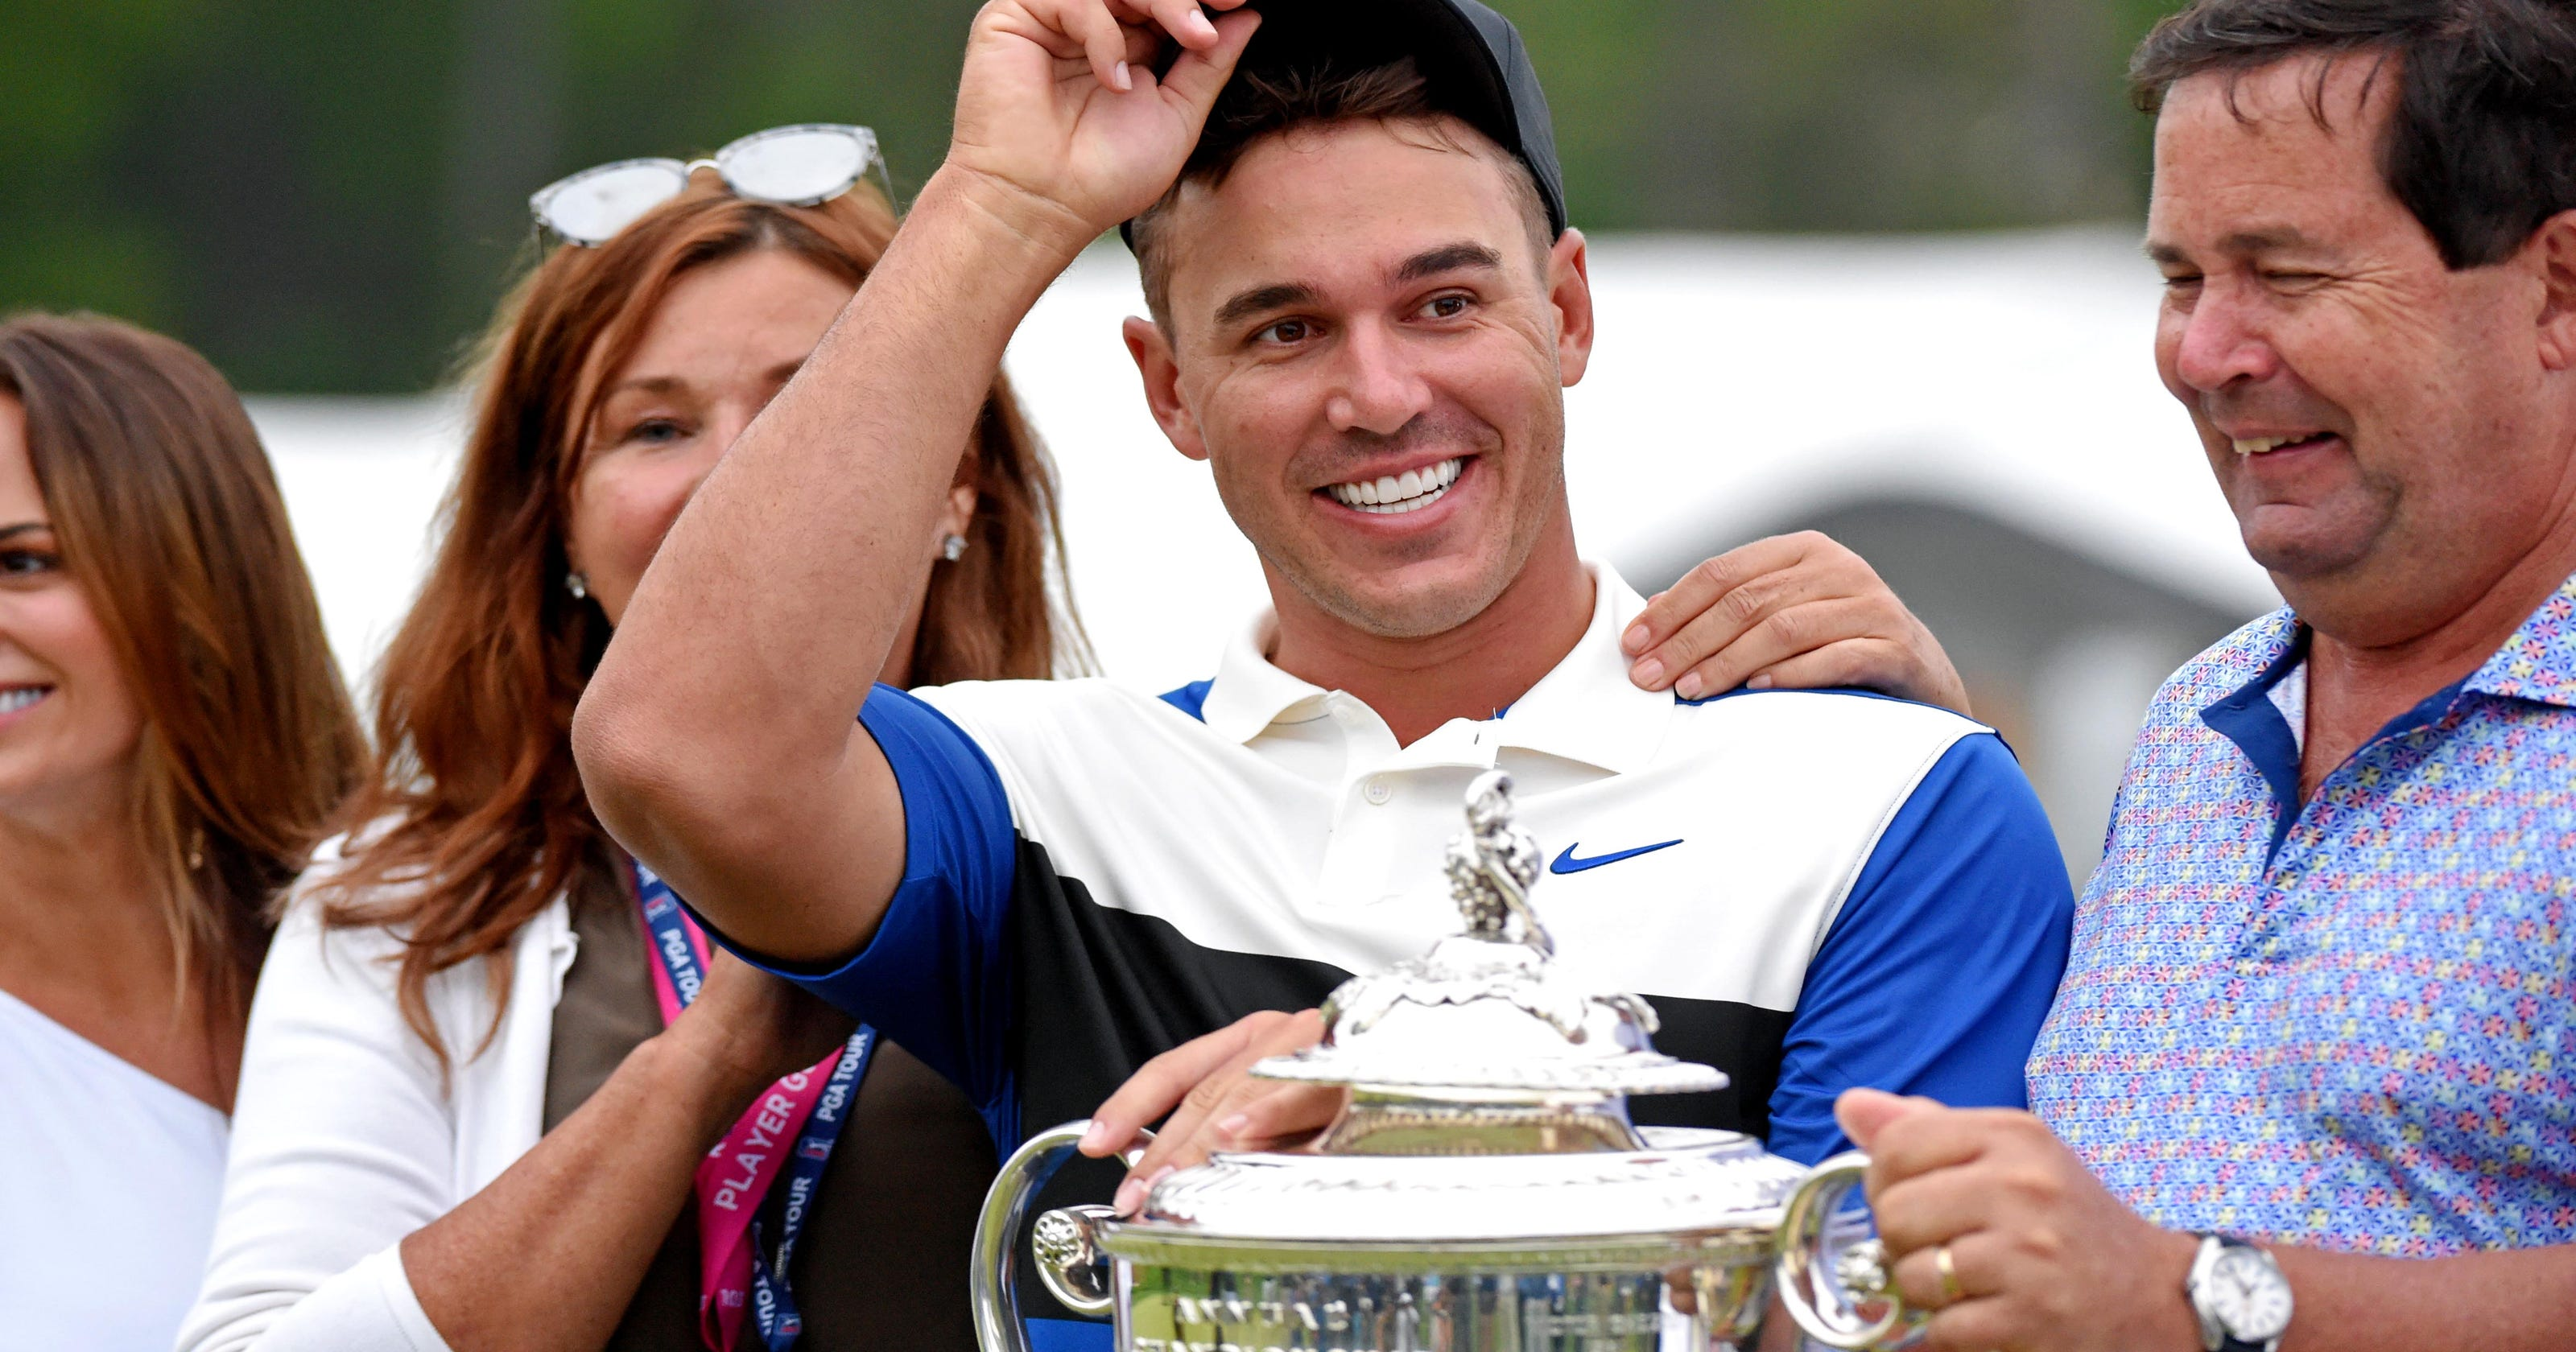 Brooks Koepka is very good, but slow down on Tiger Woods comparisons